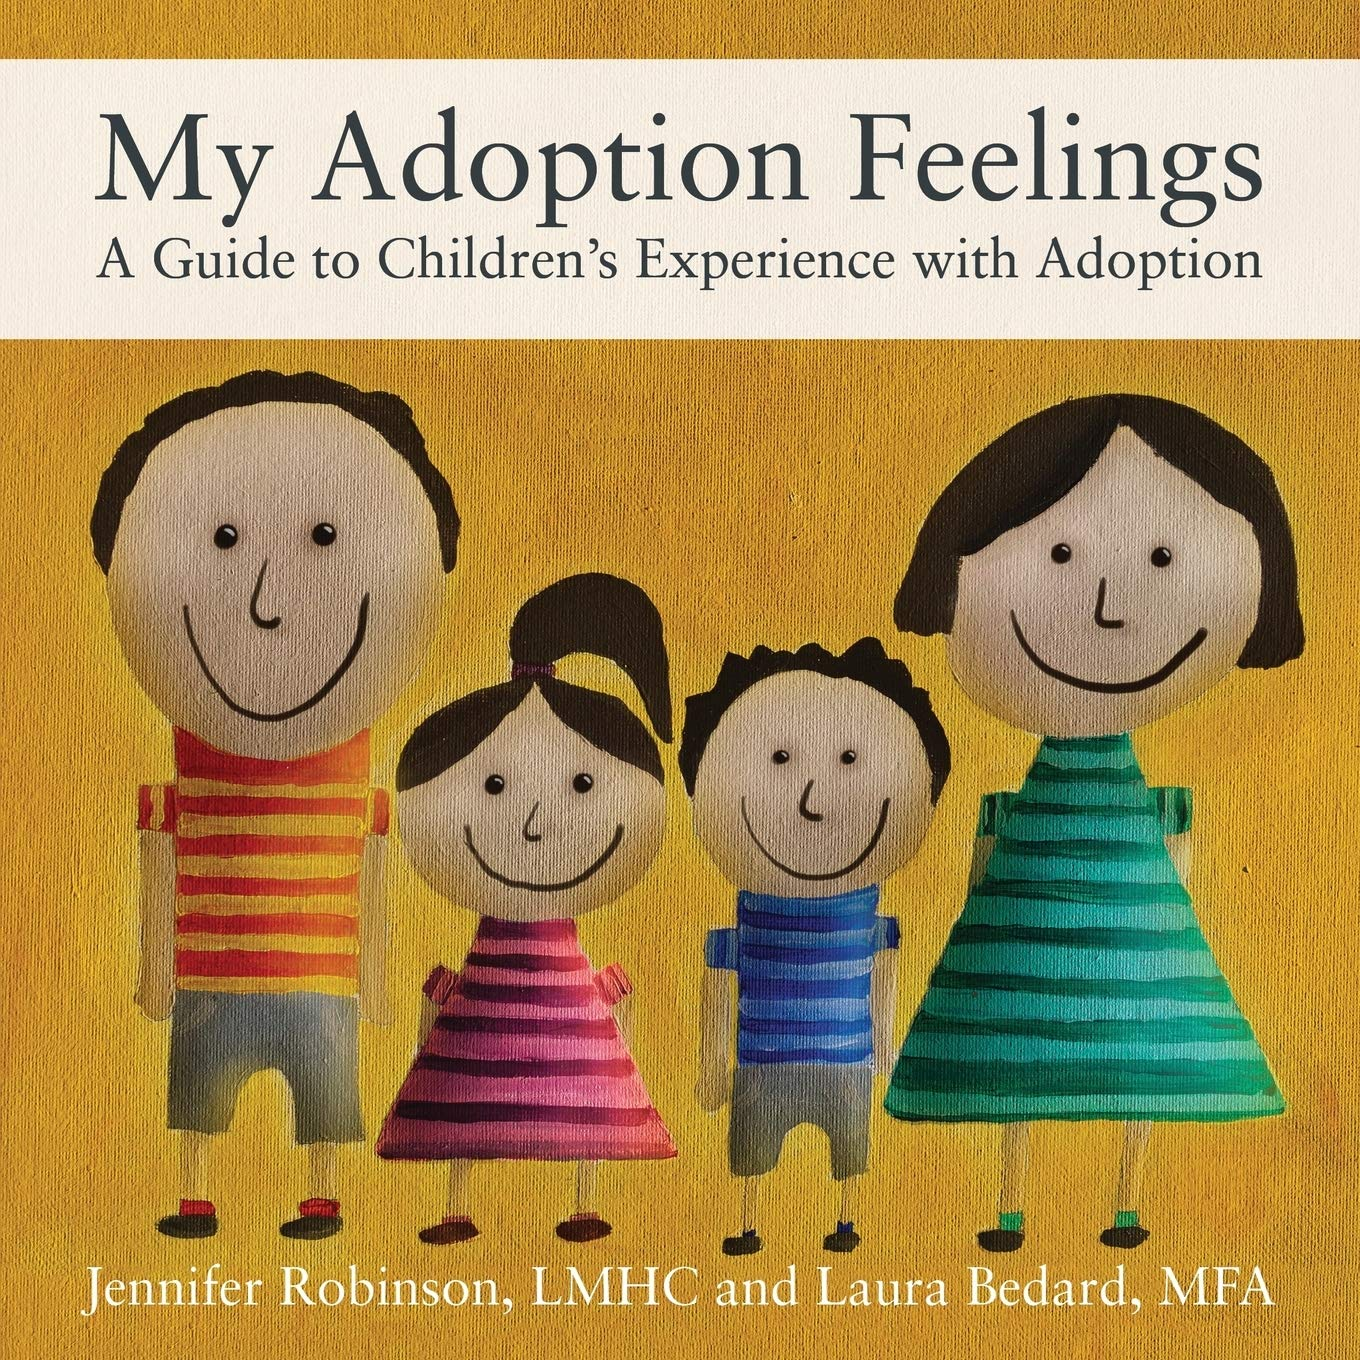 Image OfMy Adoption Feelings: A Guide To Children's Experience With Adoption